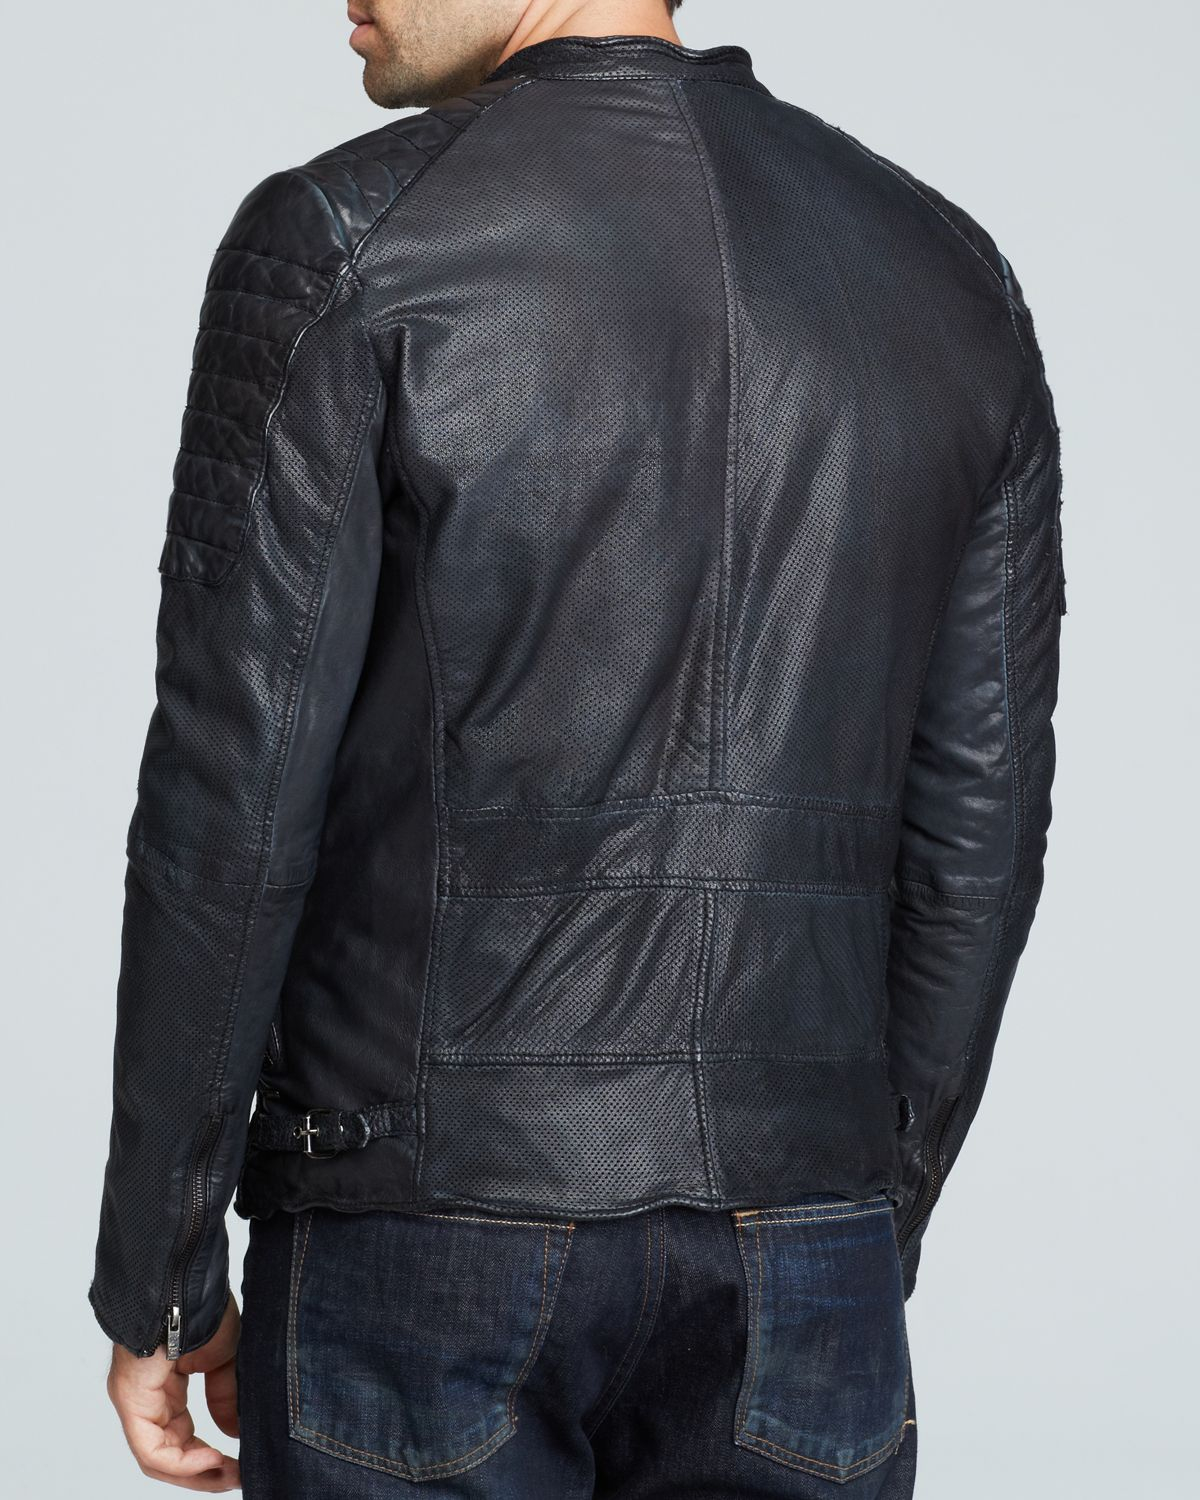 Scotch & soda Leather Jacket in Black for Men | Lyst : scotch and soda quilted leather jacket - Adamdwight.com